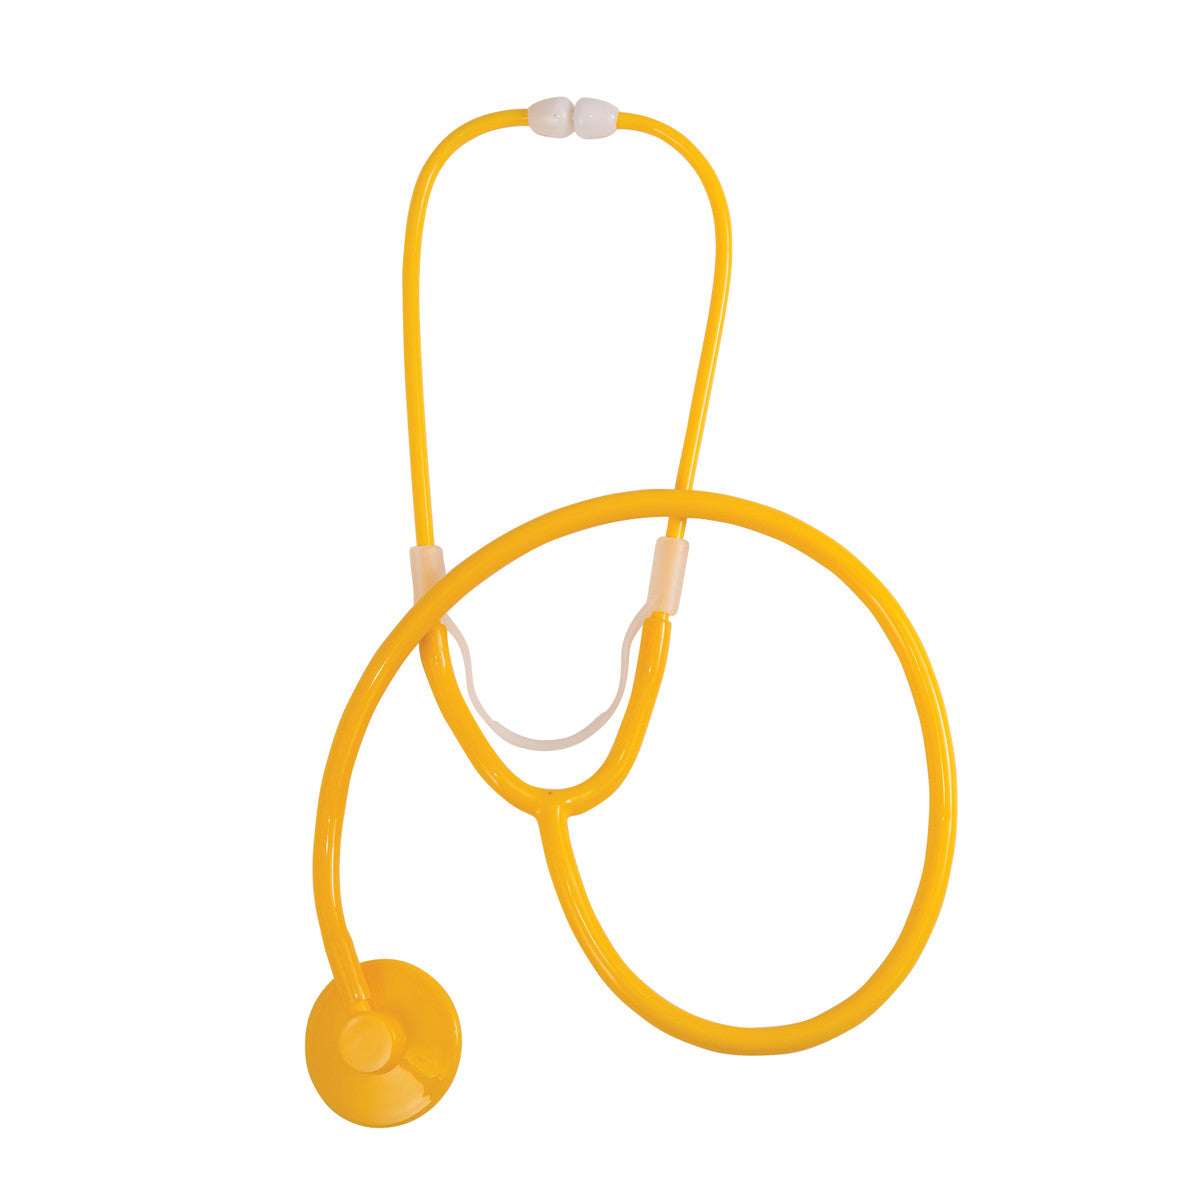 Stethoscope yellow. Dispos a scope single